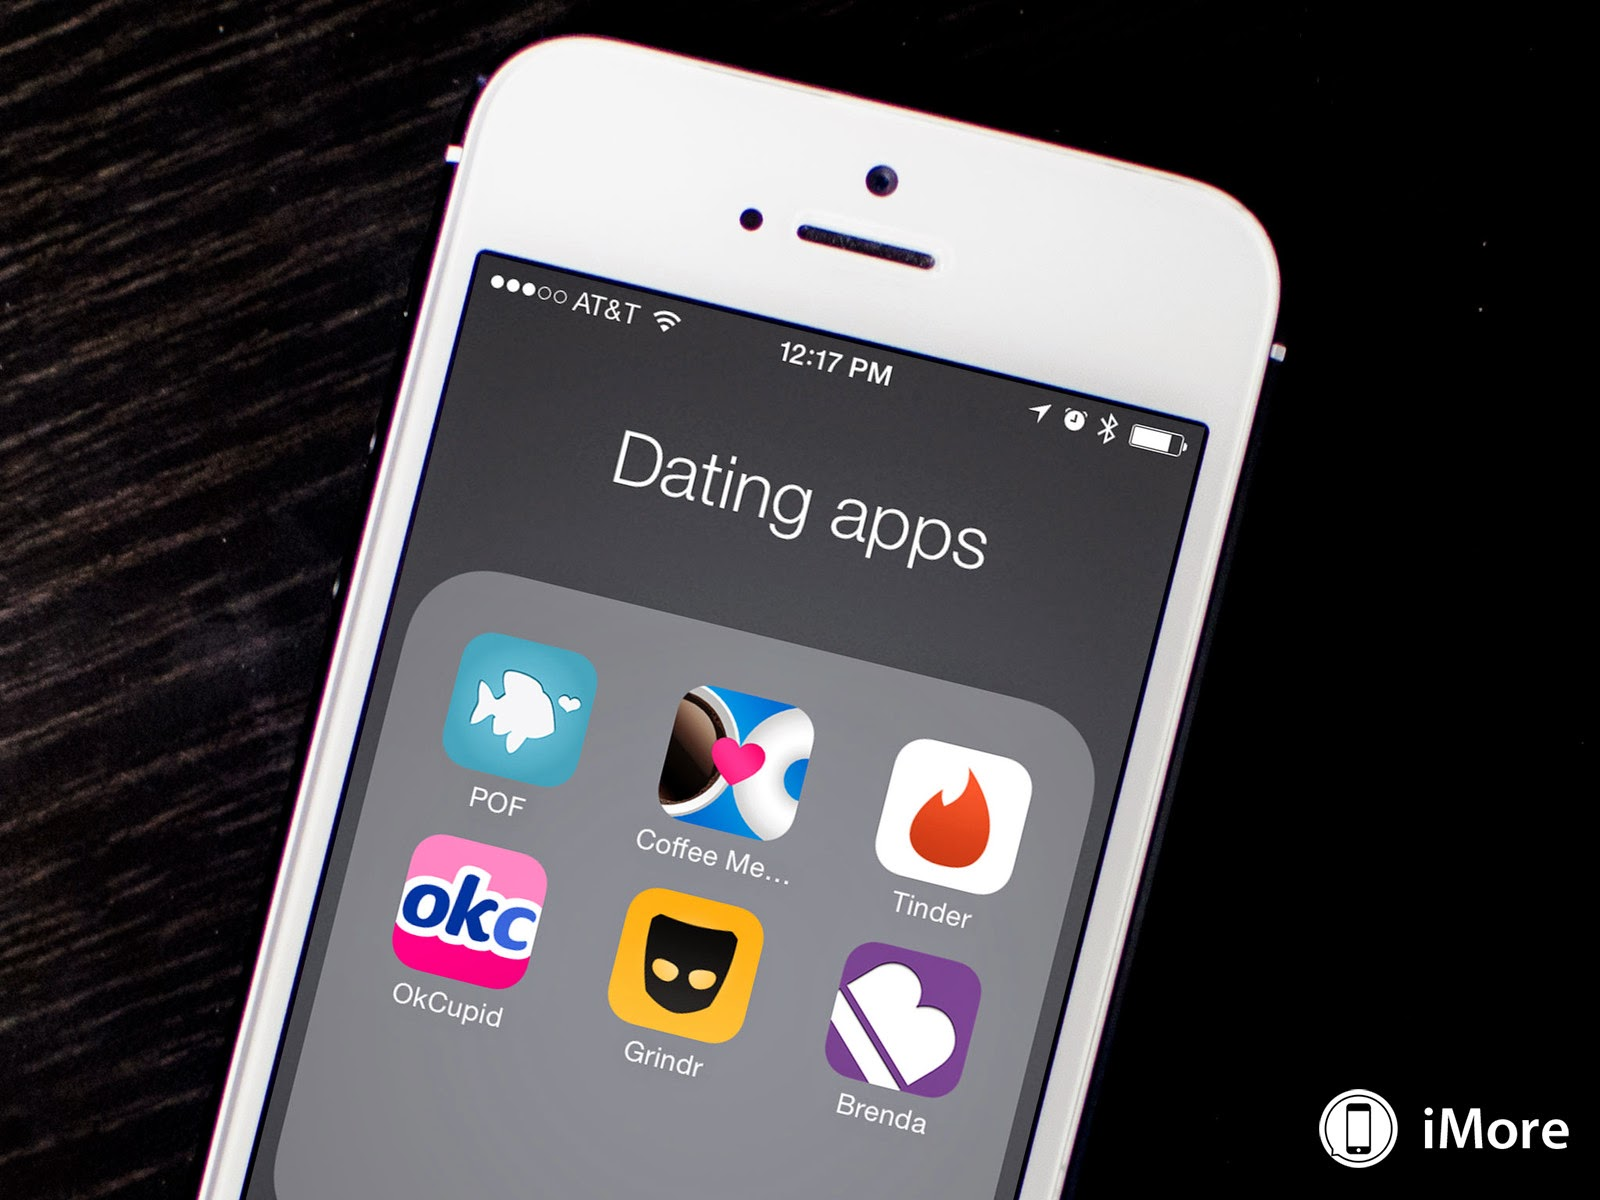 17-year-old-dating-apps